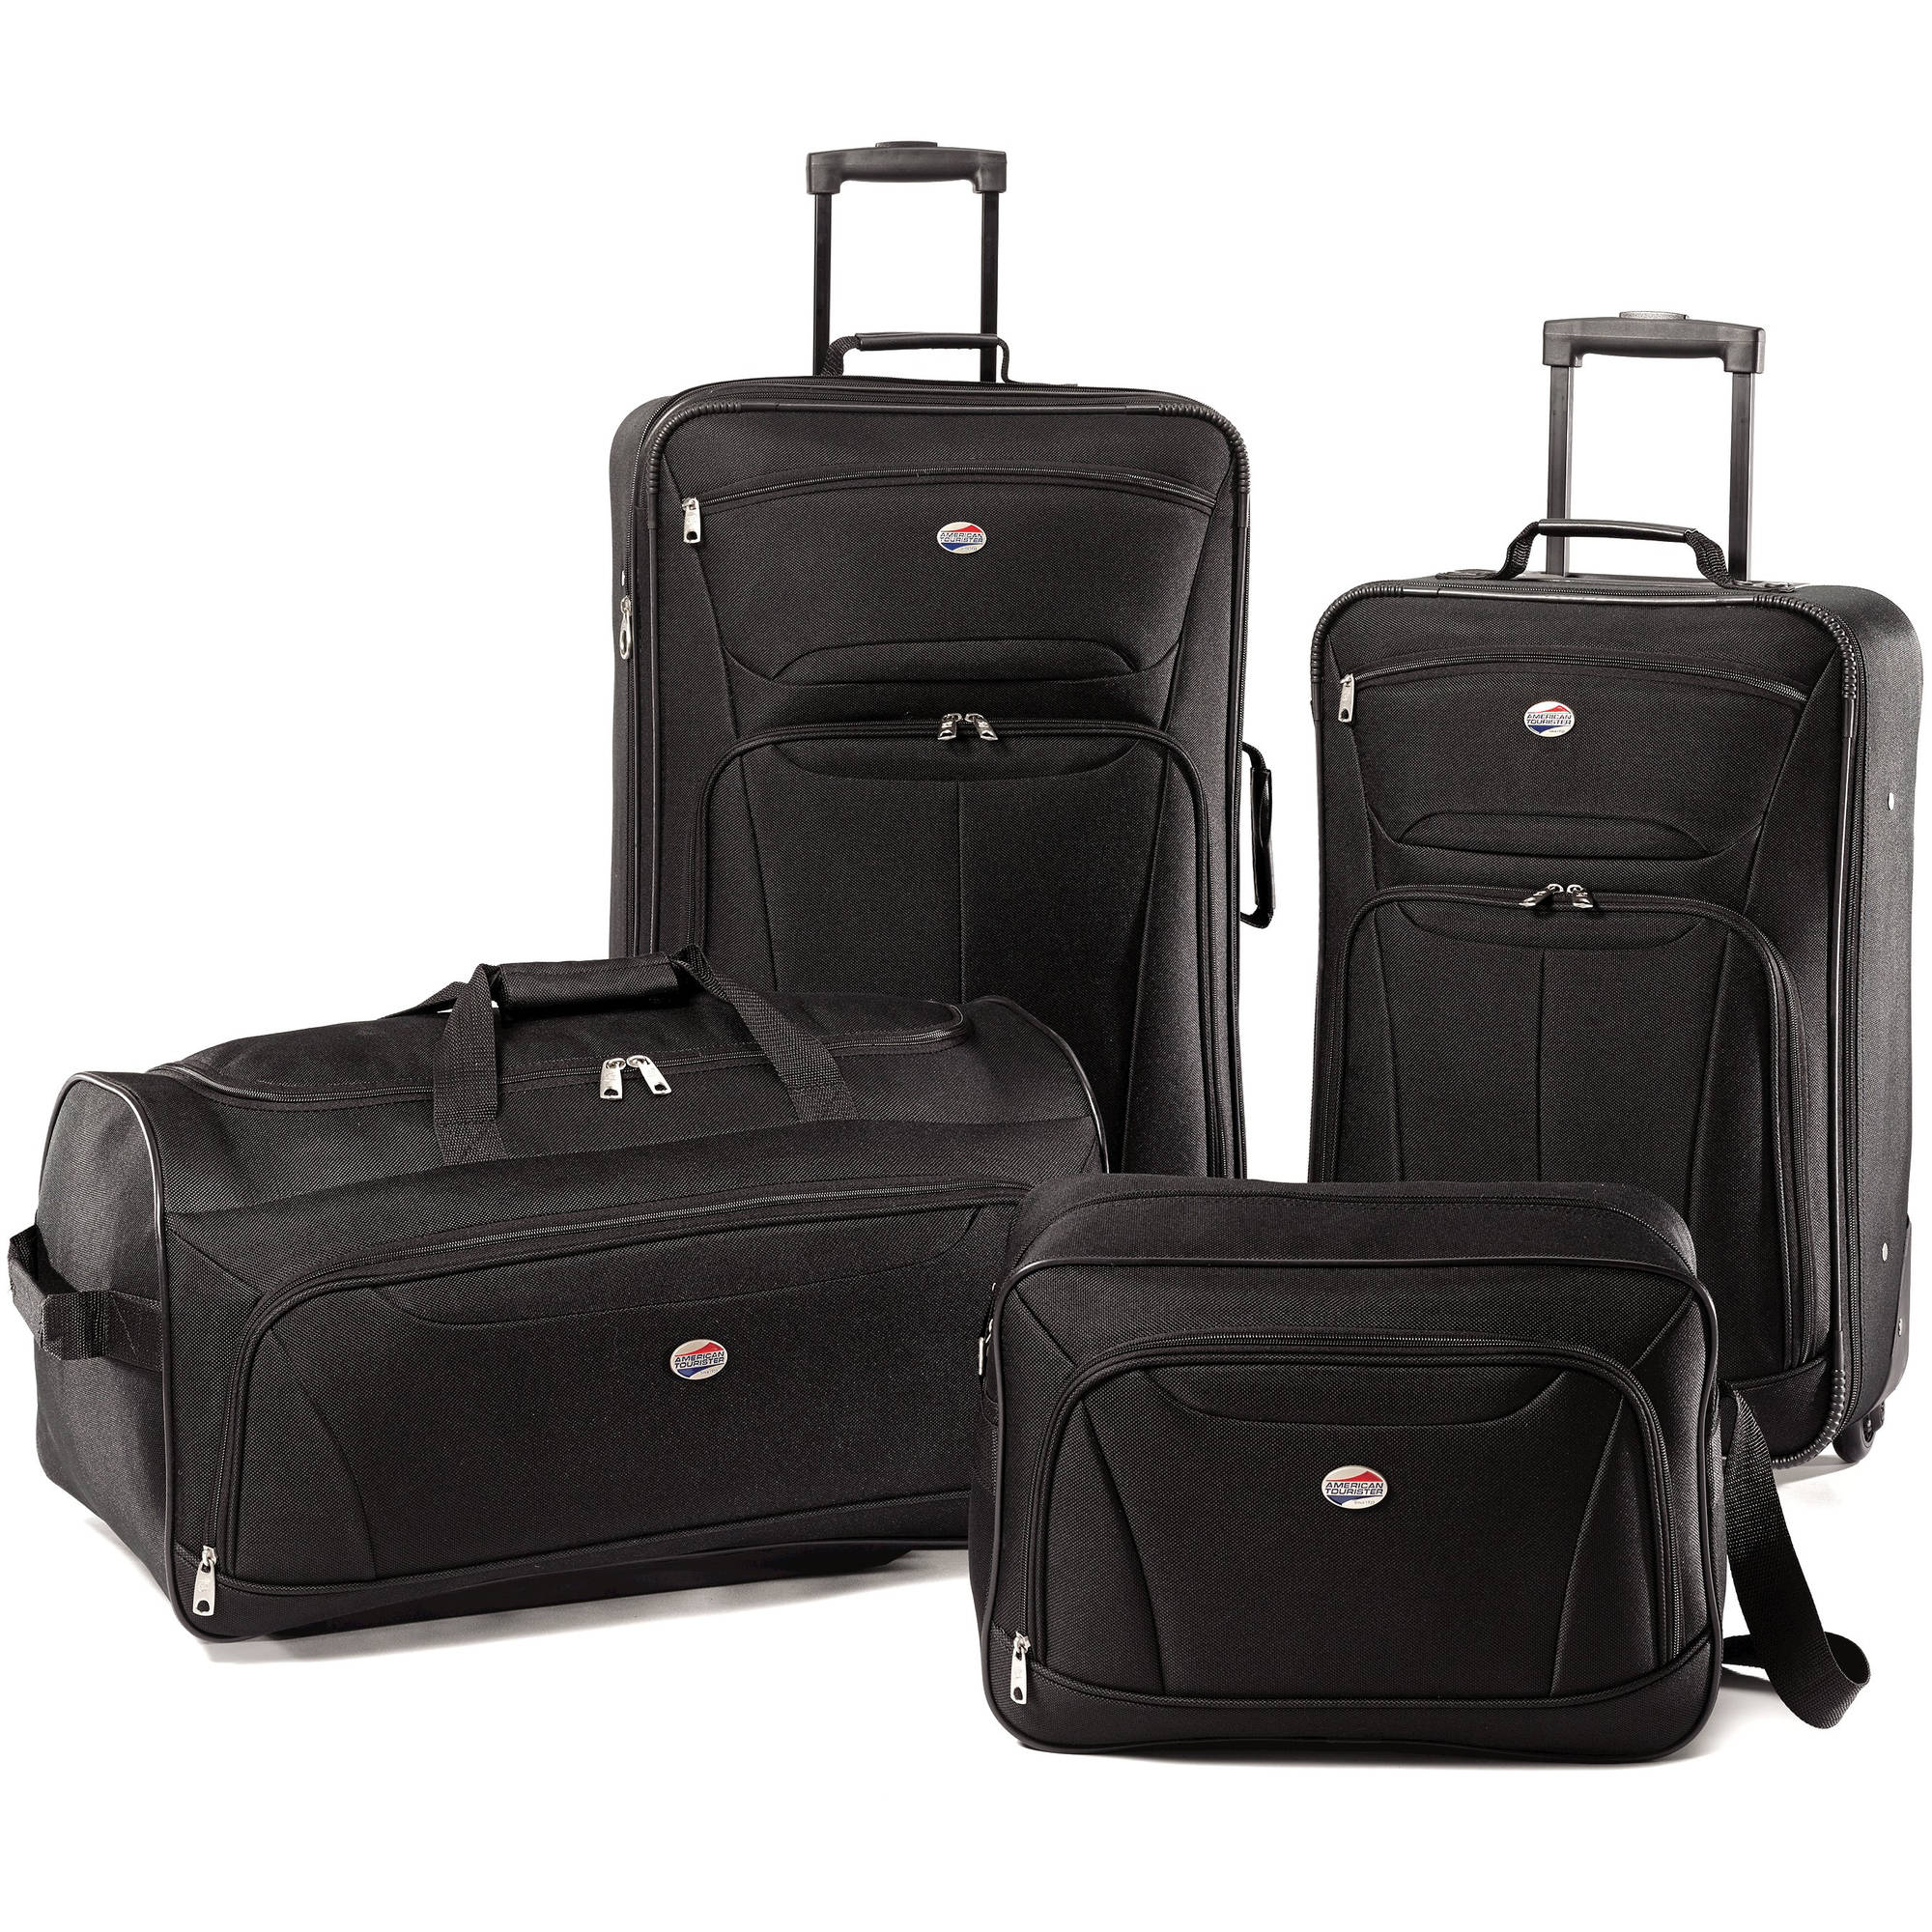 U.S. Traveler Vineyard 4-Piece Soft-Side Luggage Set - Walmart.com